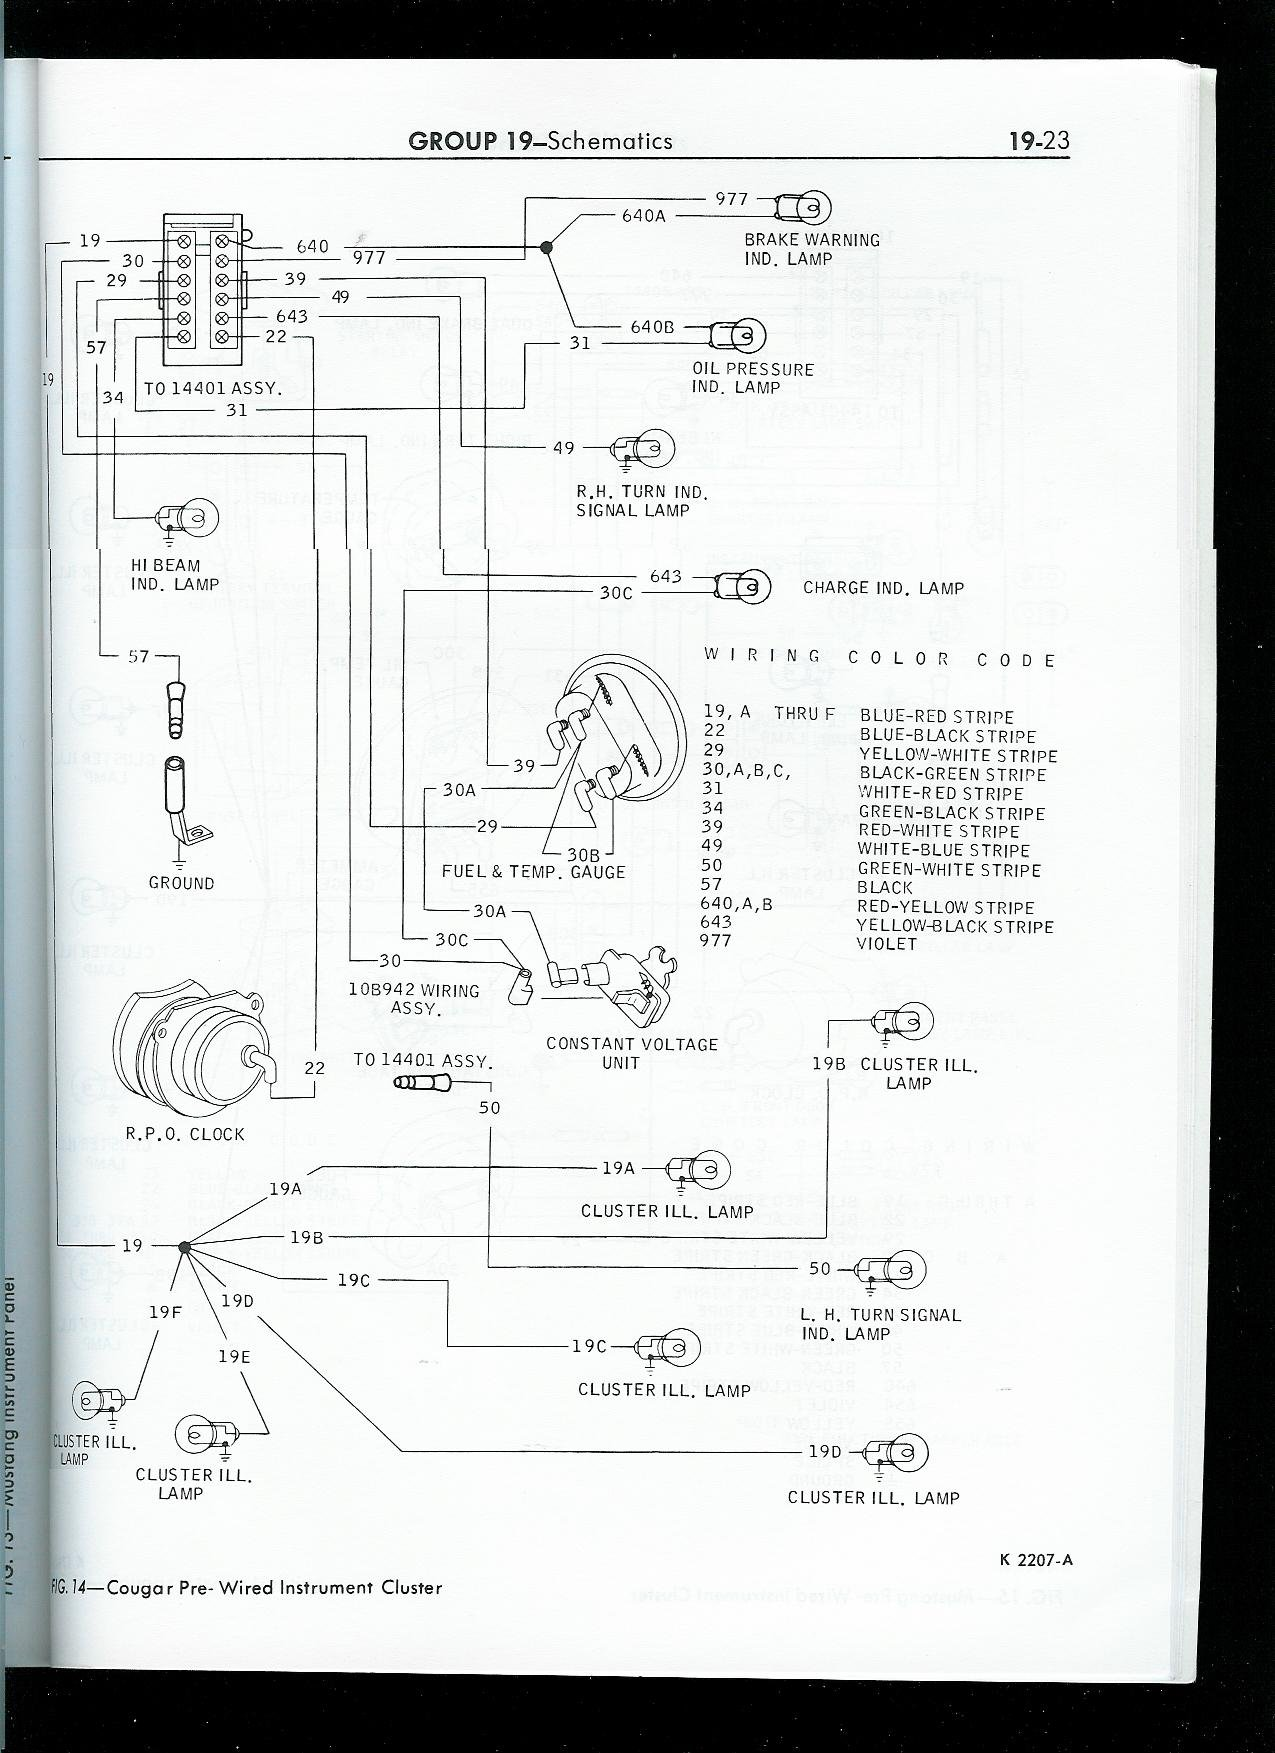 1980 Mustang Tach Wiring Diagram -1994 Chevy 1500 Wiring Diagram | Begeboy Wiring  Diagram Source | 1980 Mustang Tach Wiring Diagram |  | Begeboy Wiring Diagram Source